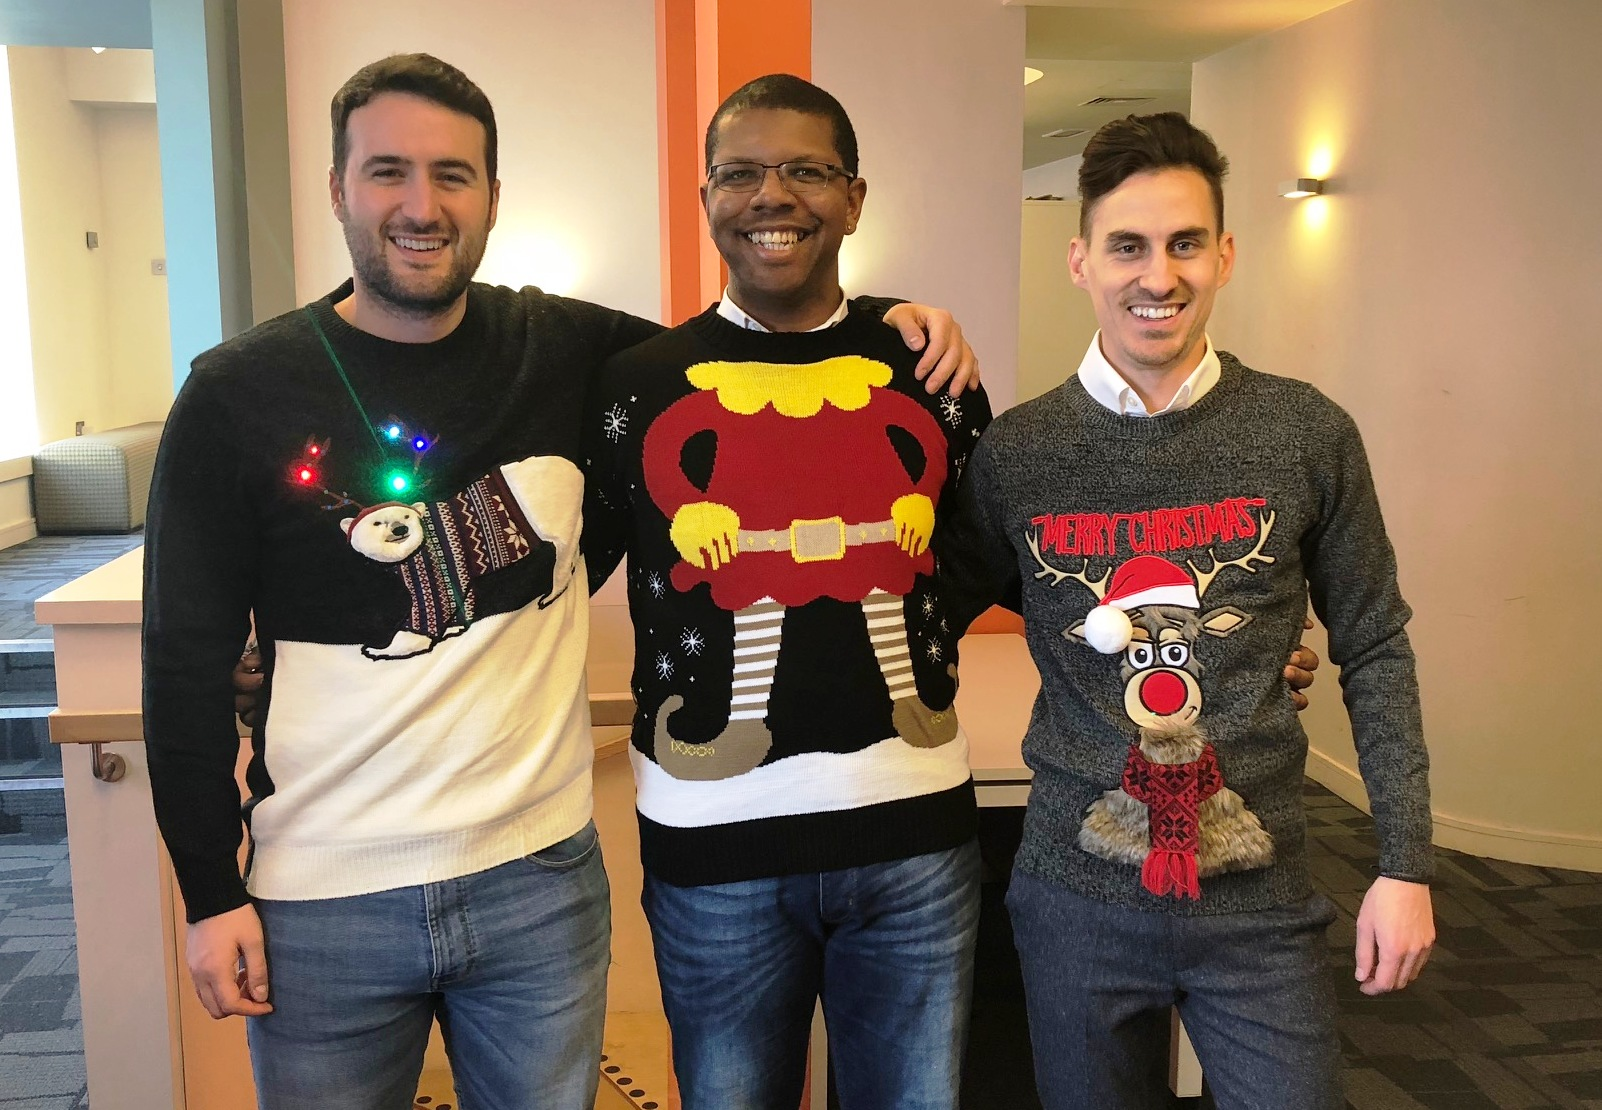 Morgan City Living Fundraising for CT on Christmas Jumper Day